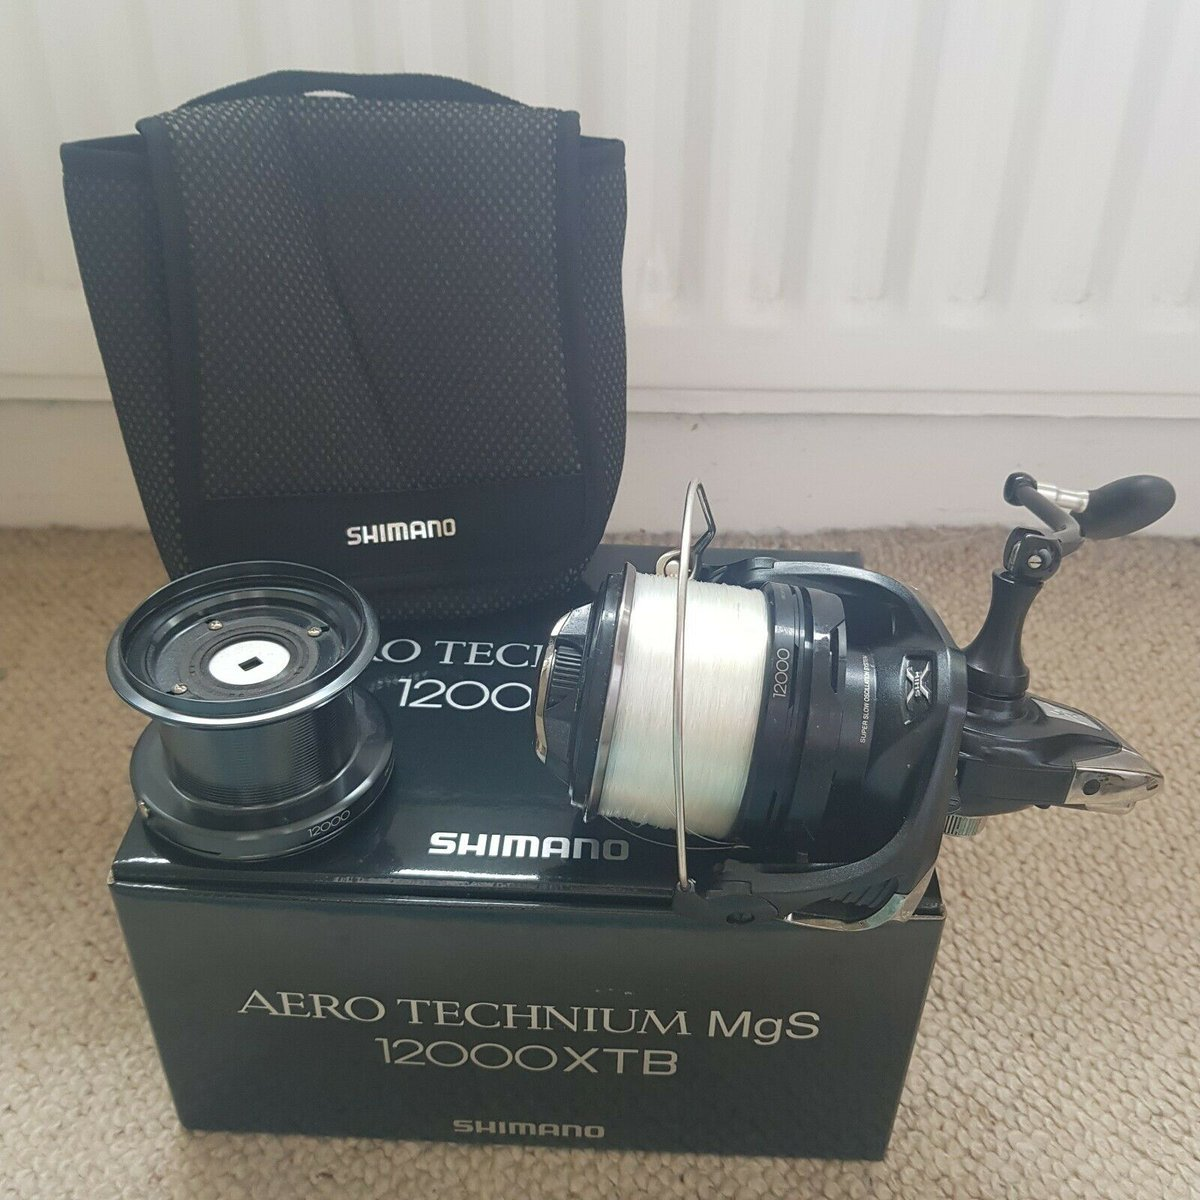 Ad - Shimano Aero Technium 12000 XTB MGS x3 On eBay here -->> https://t.co/rk6qI3etiU  #carpfi